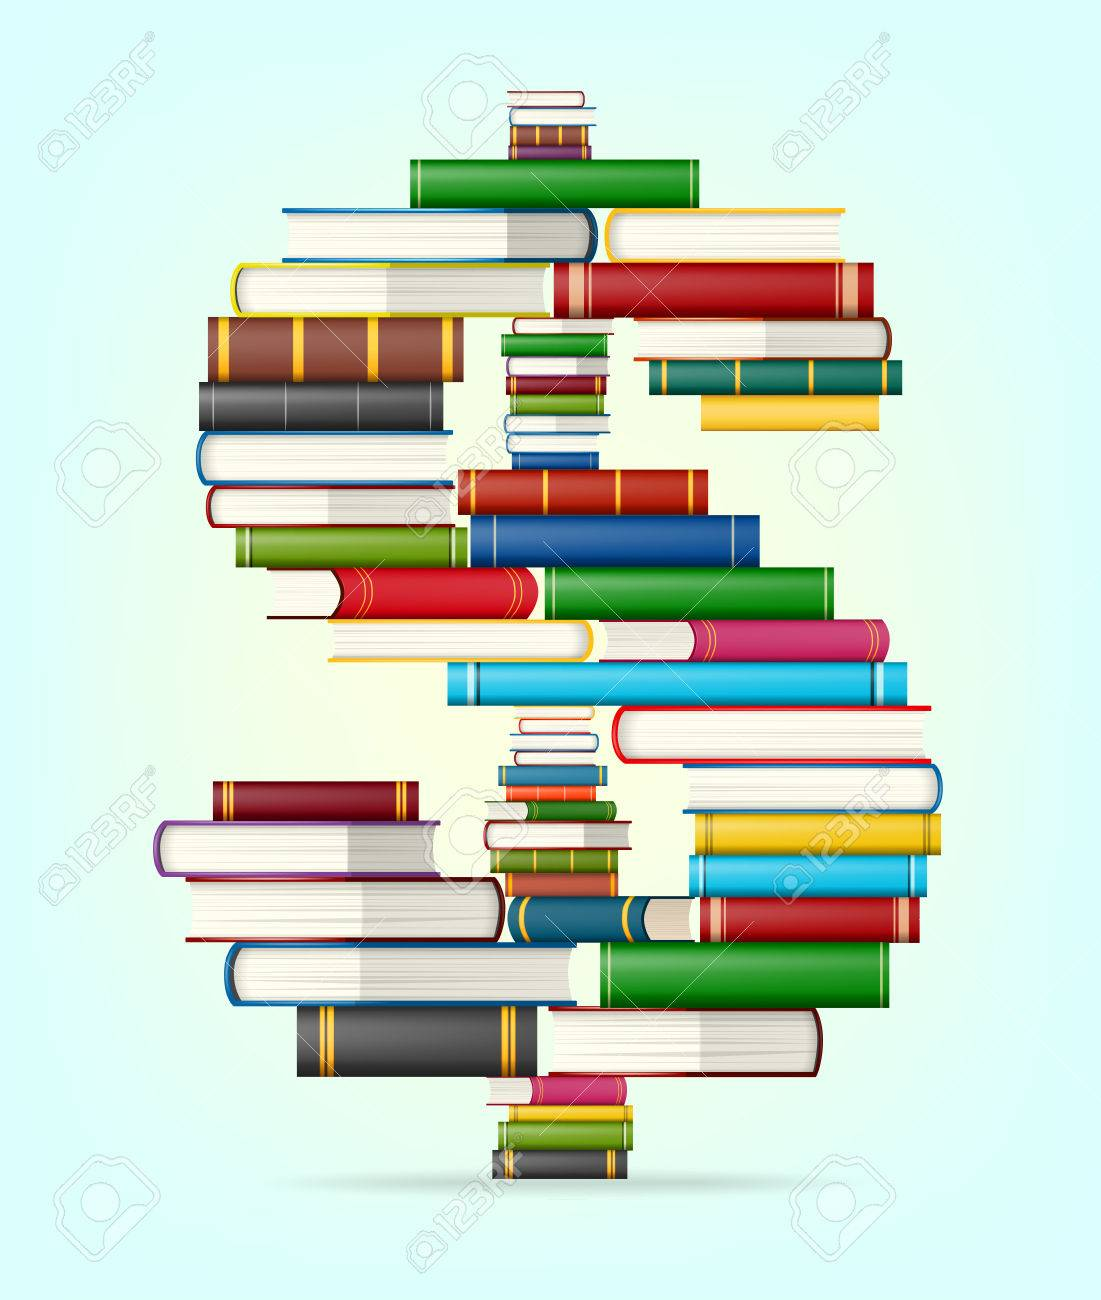 dollar sign in stacks of multicolored books illustration royalty